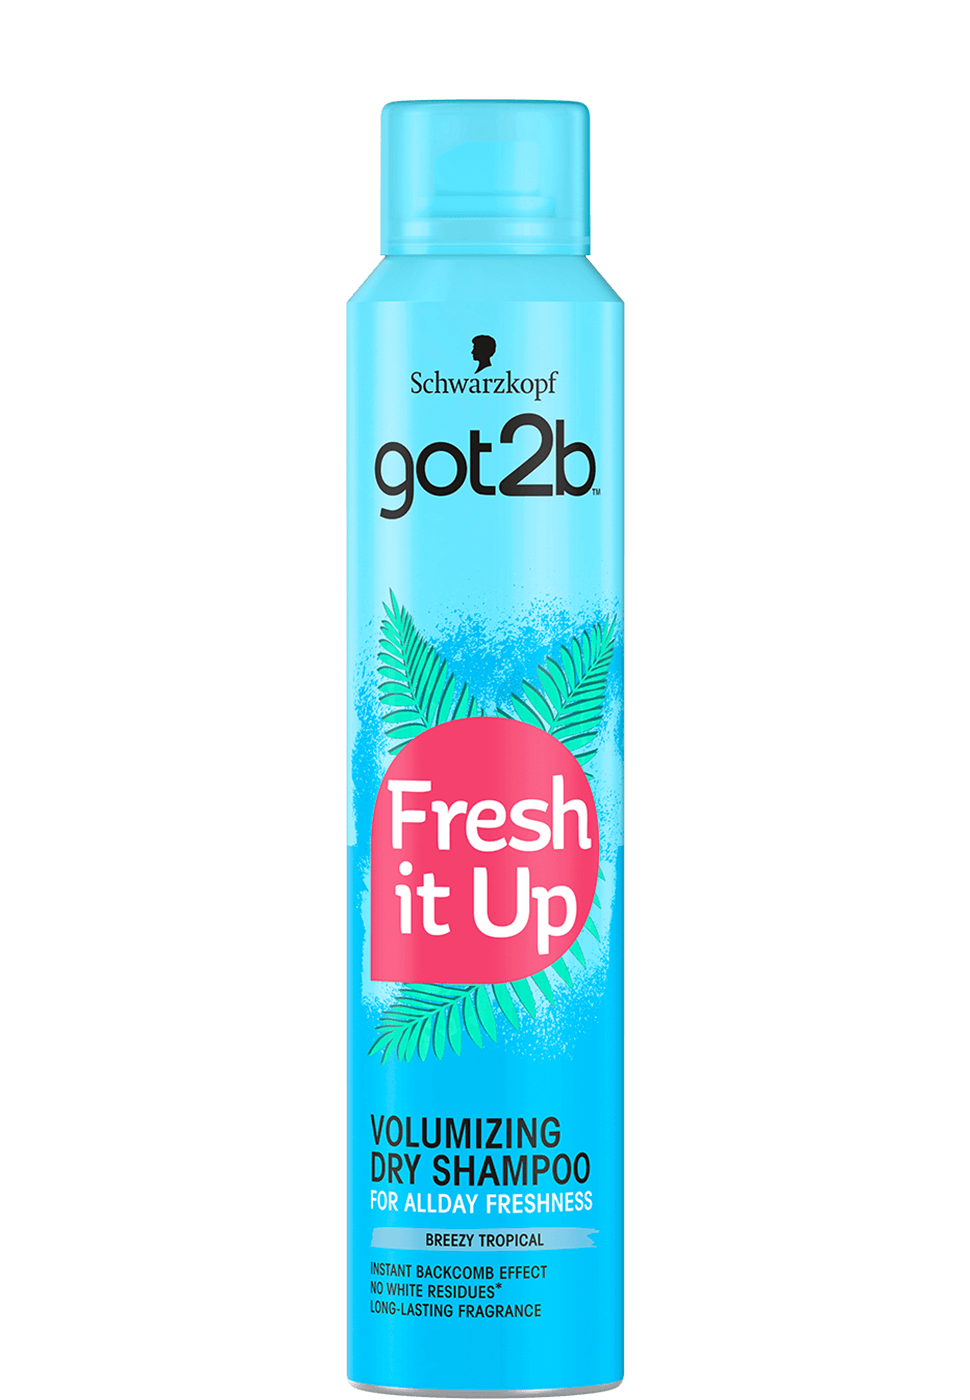 Thumbnail – Fresh it Up volume